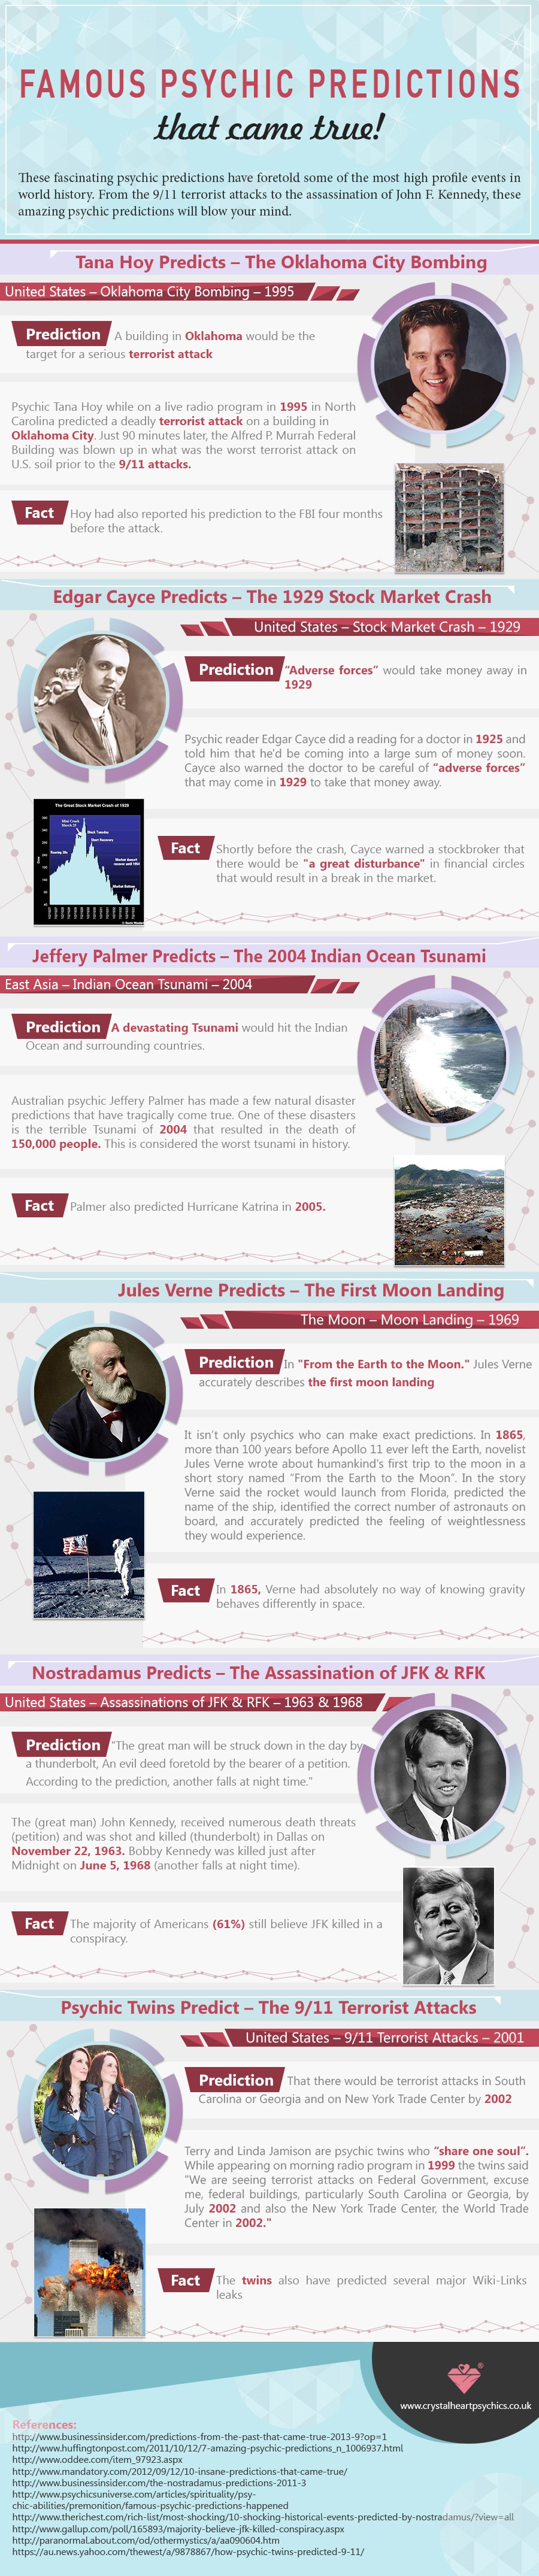 Famous Psychic Predictions That Came True!